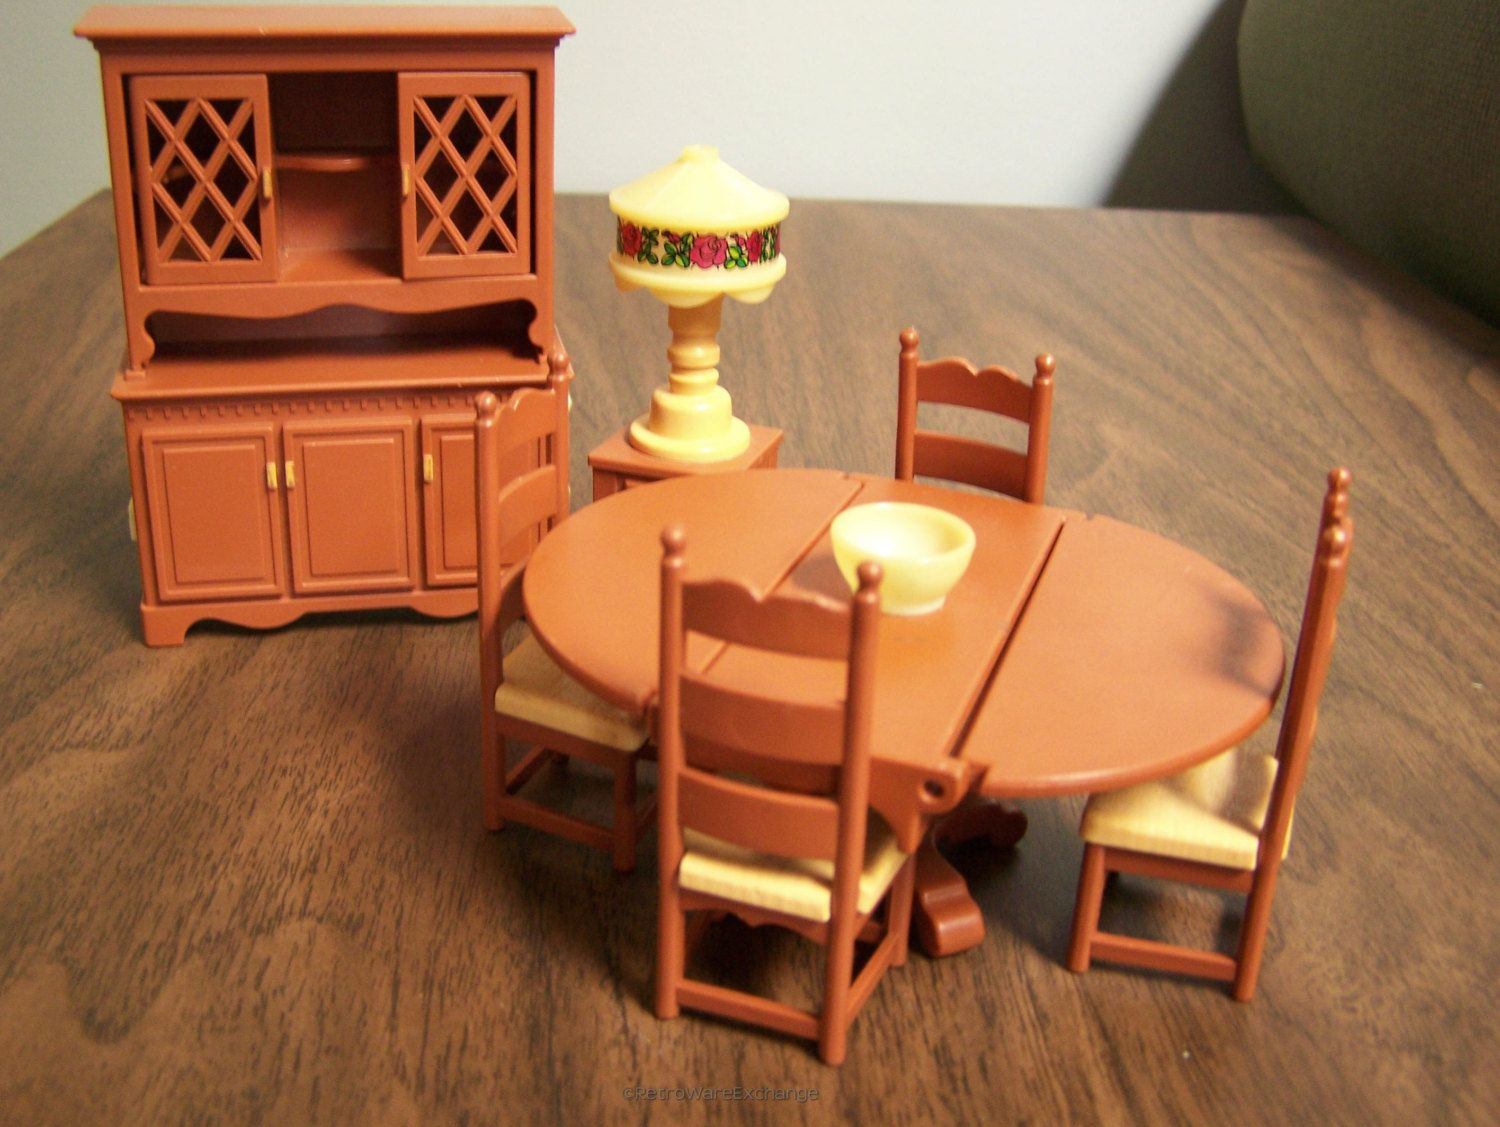 Vintage 1980 Fisher Price Loving Family Dollhouse Furniture U2013 Dining Room  Set U2013 Drop Leaf Table, 4 Chairs, China Cabinet / Hutch, And Lamp